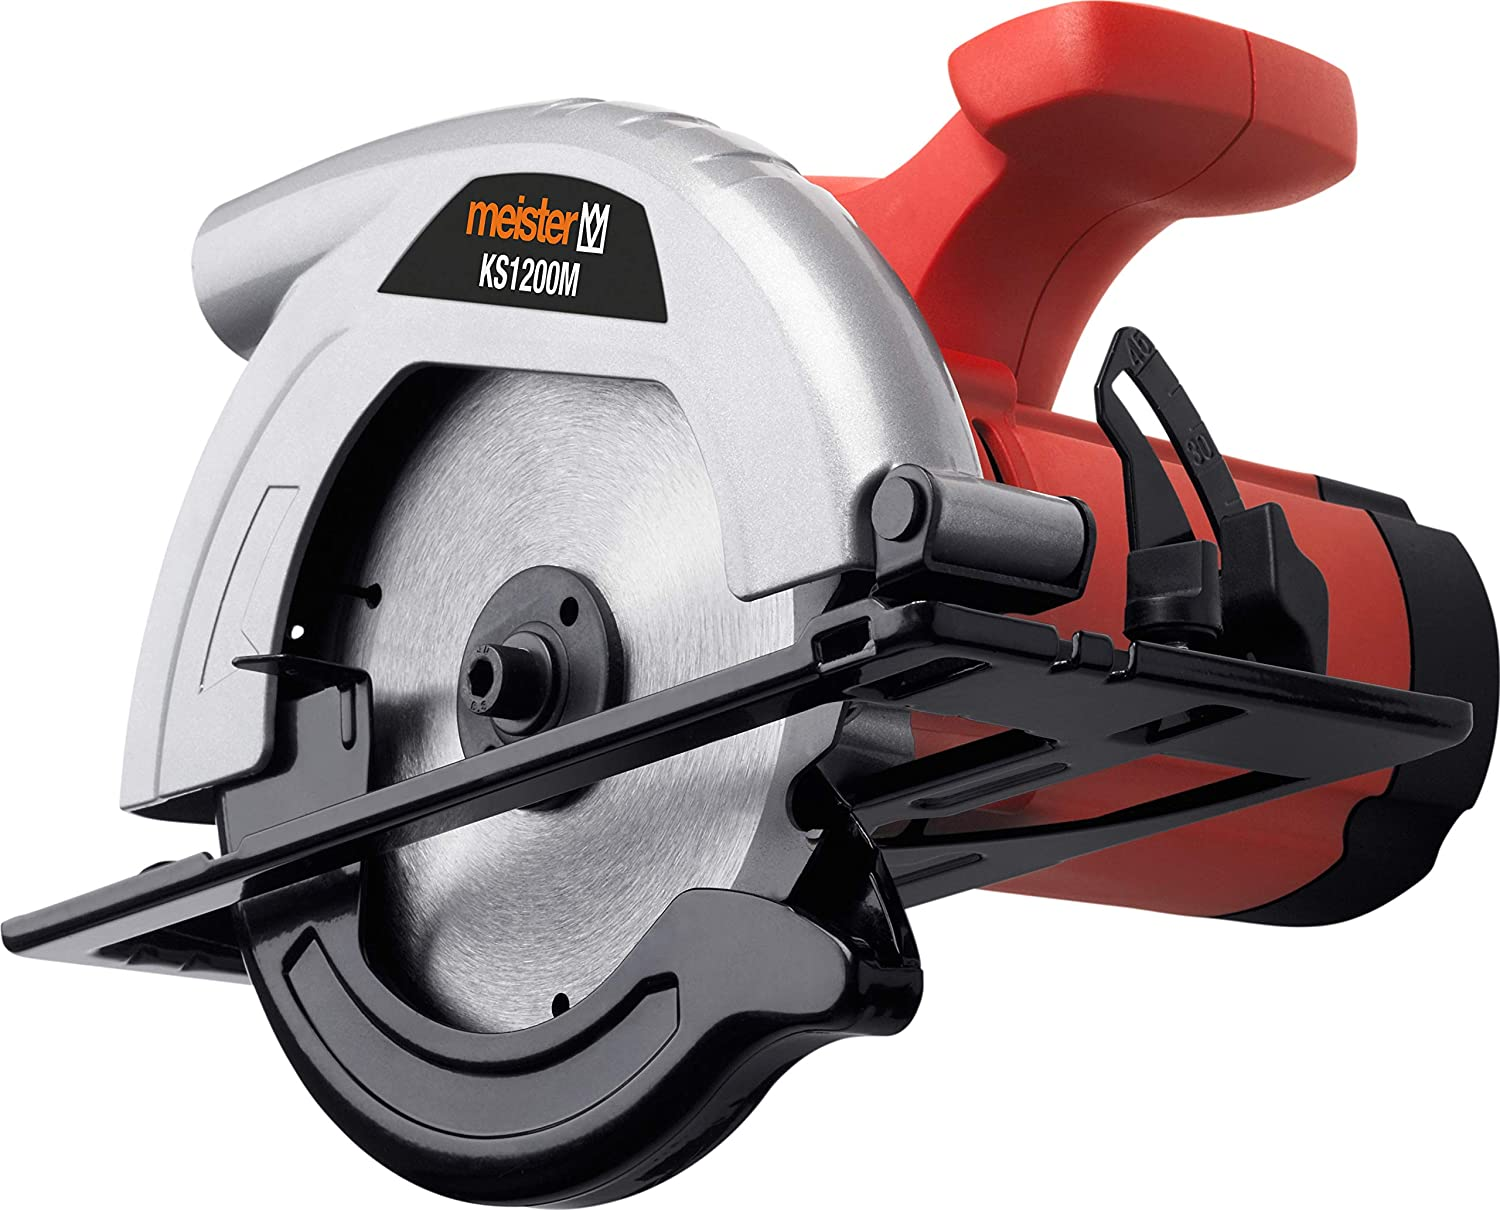 Meister scie circulaire 1200 W KS1200M 5403520